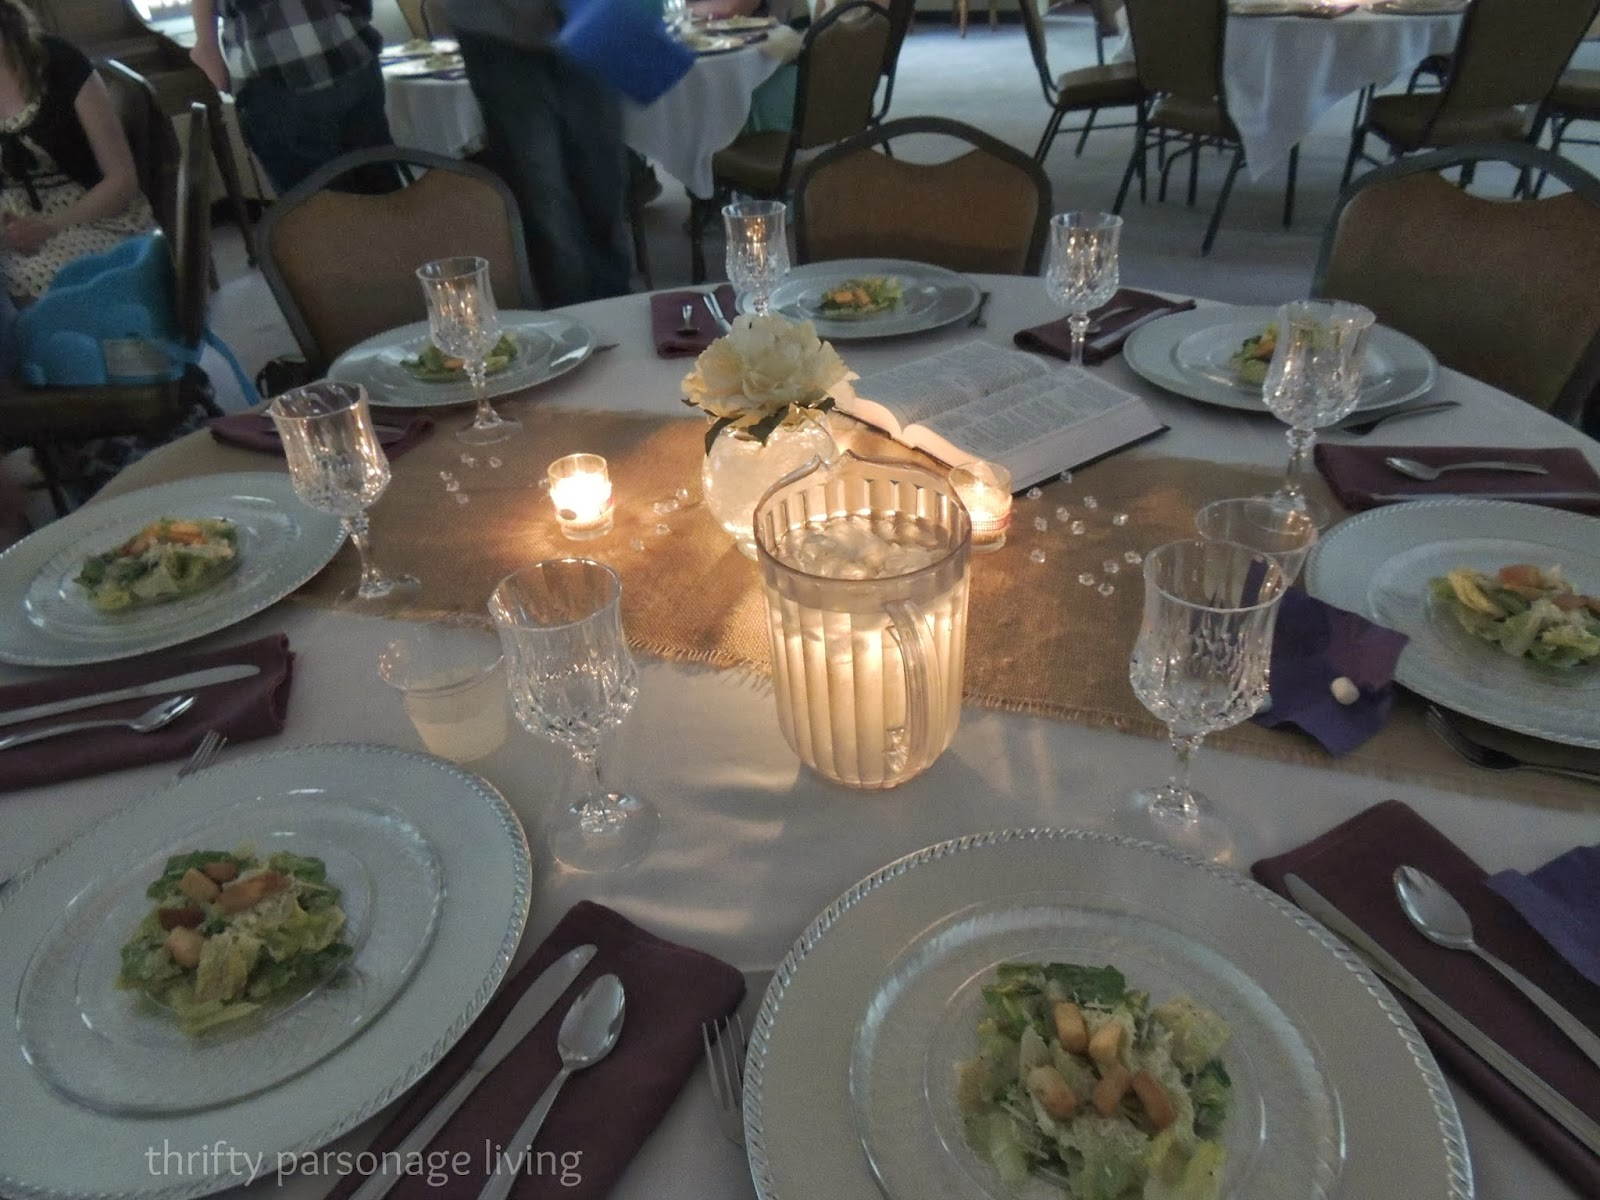 Thrifty Parsonage Living: DIY REHEARSAL DINNER ON A BUDGET